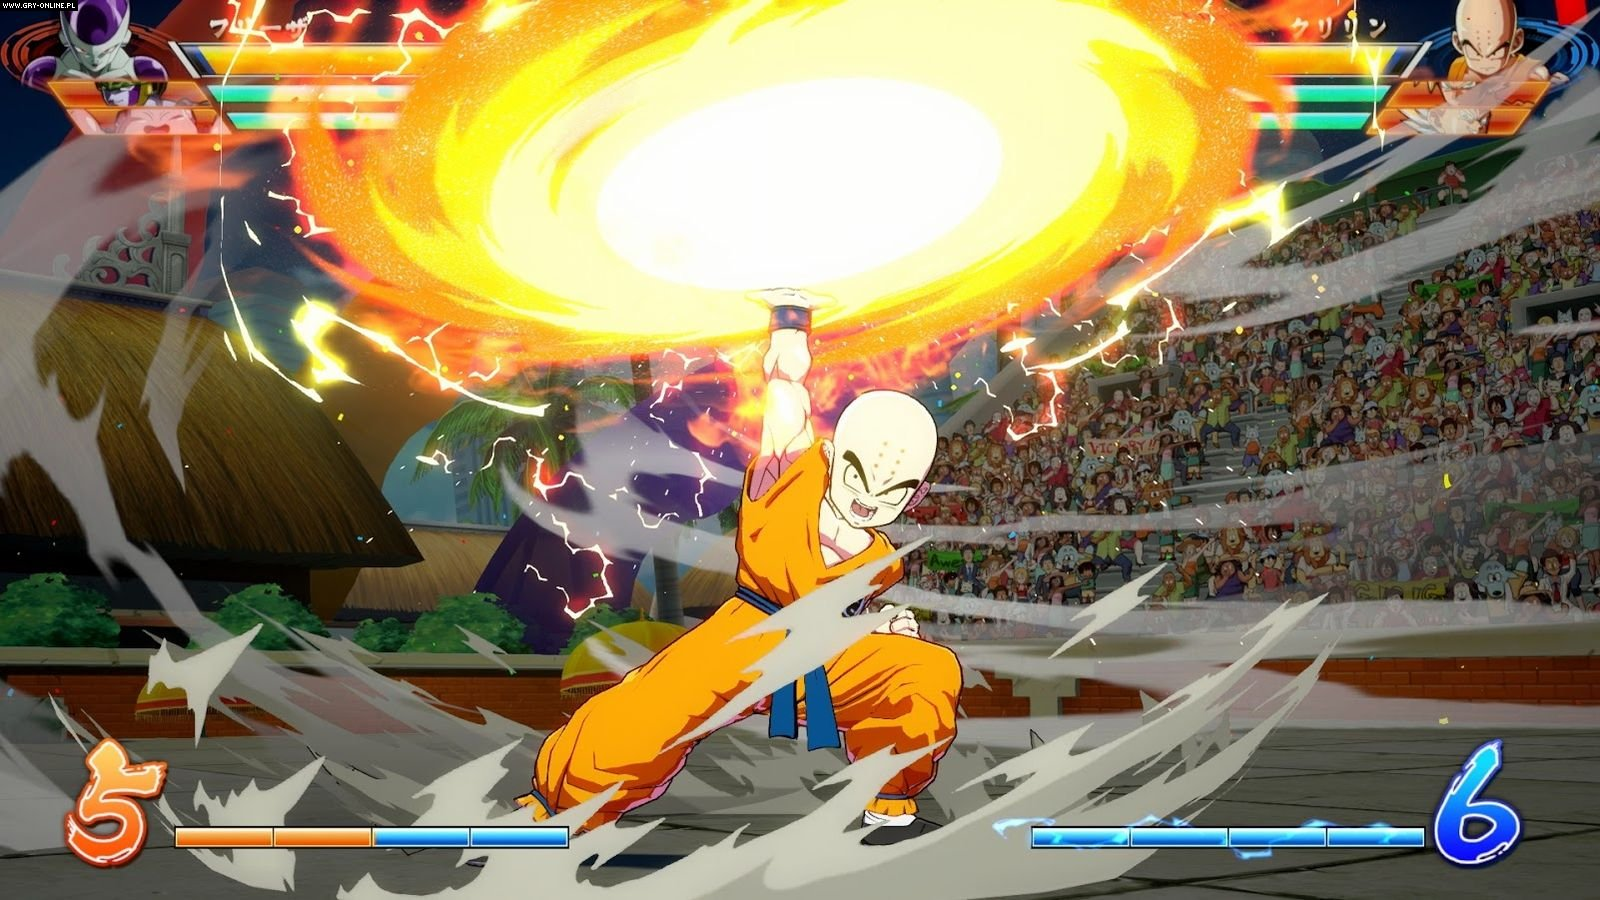 Dragon Ball FighterZ PC, XONE, PS4 Games Image 104/107, Arc System Works, Bandai Namco Entertainment